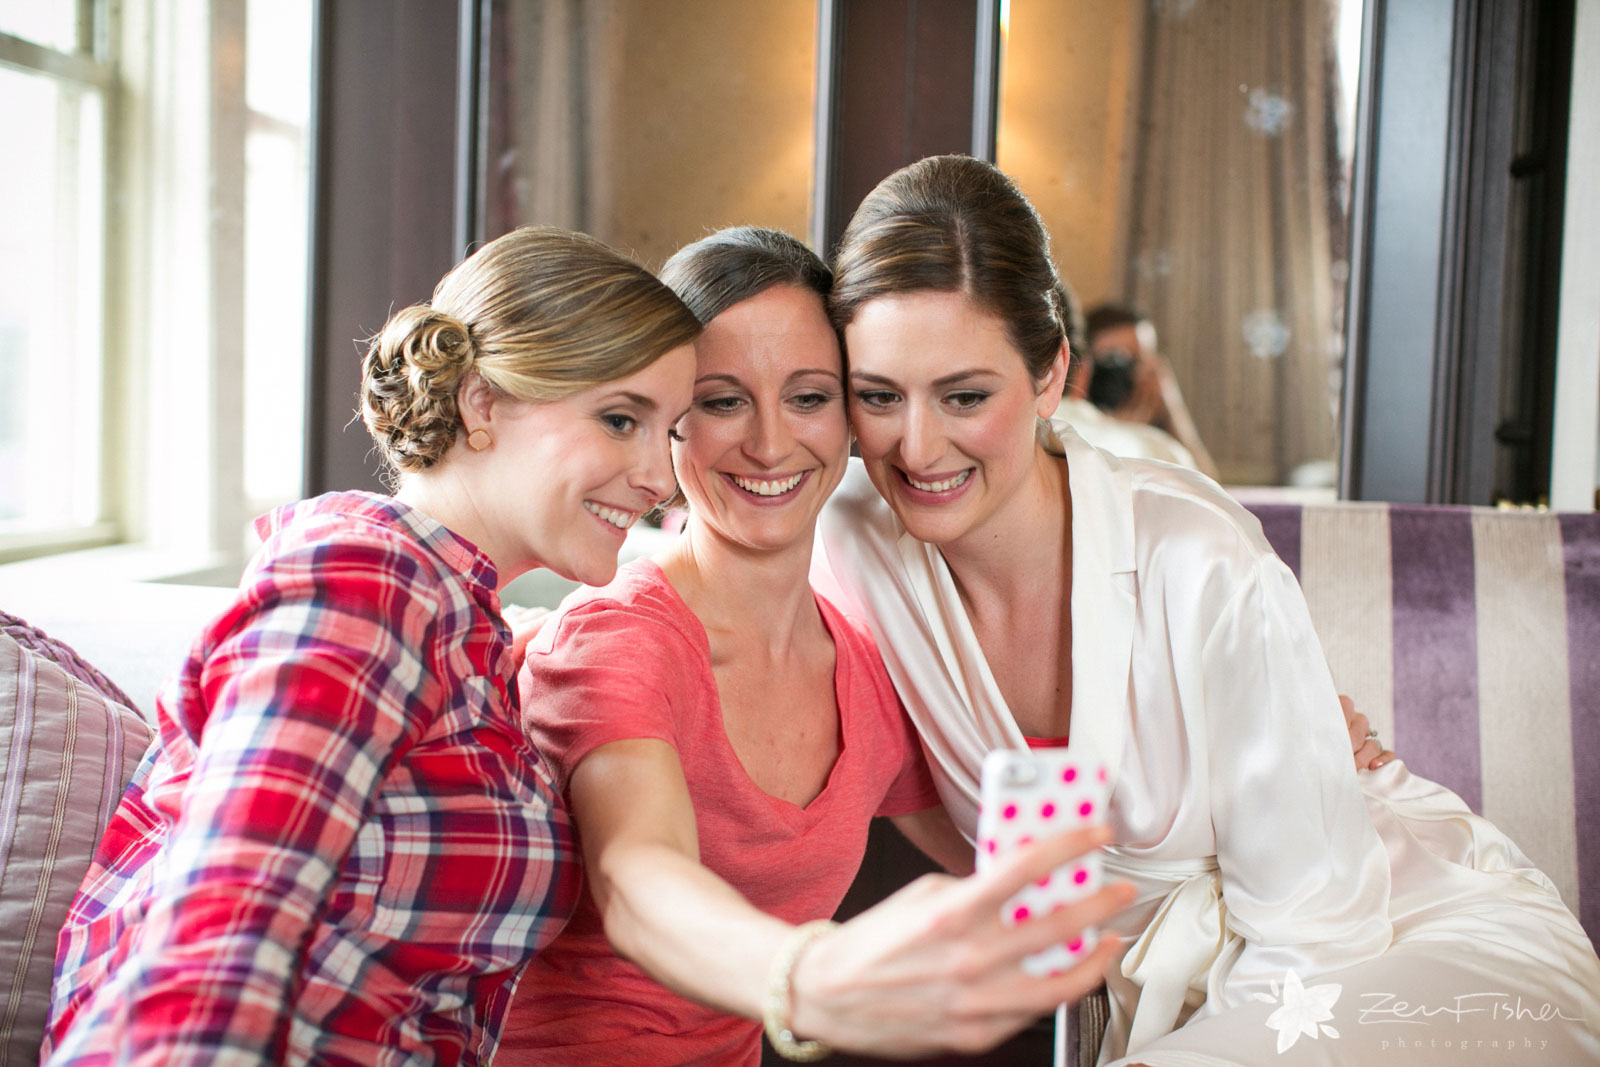 Bride and bridesmaids having fun getting ready in the hotel room taking a selfie and smiling.